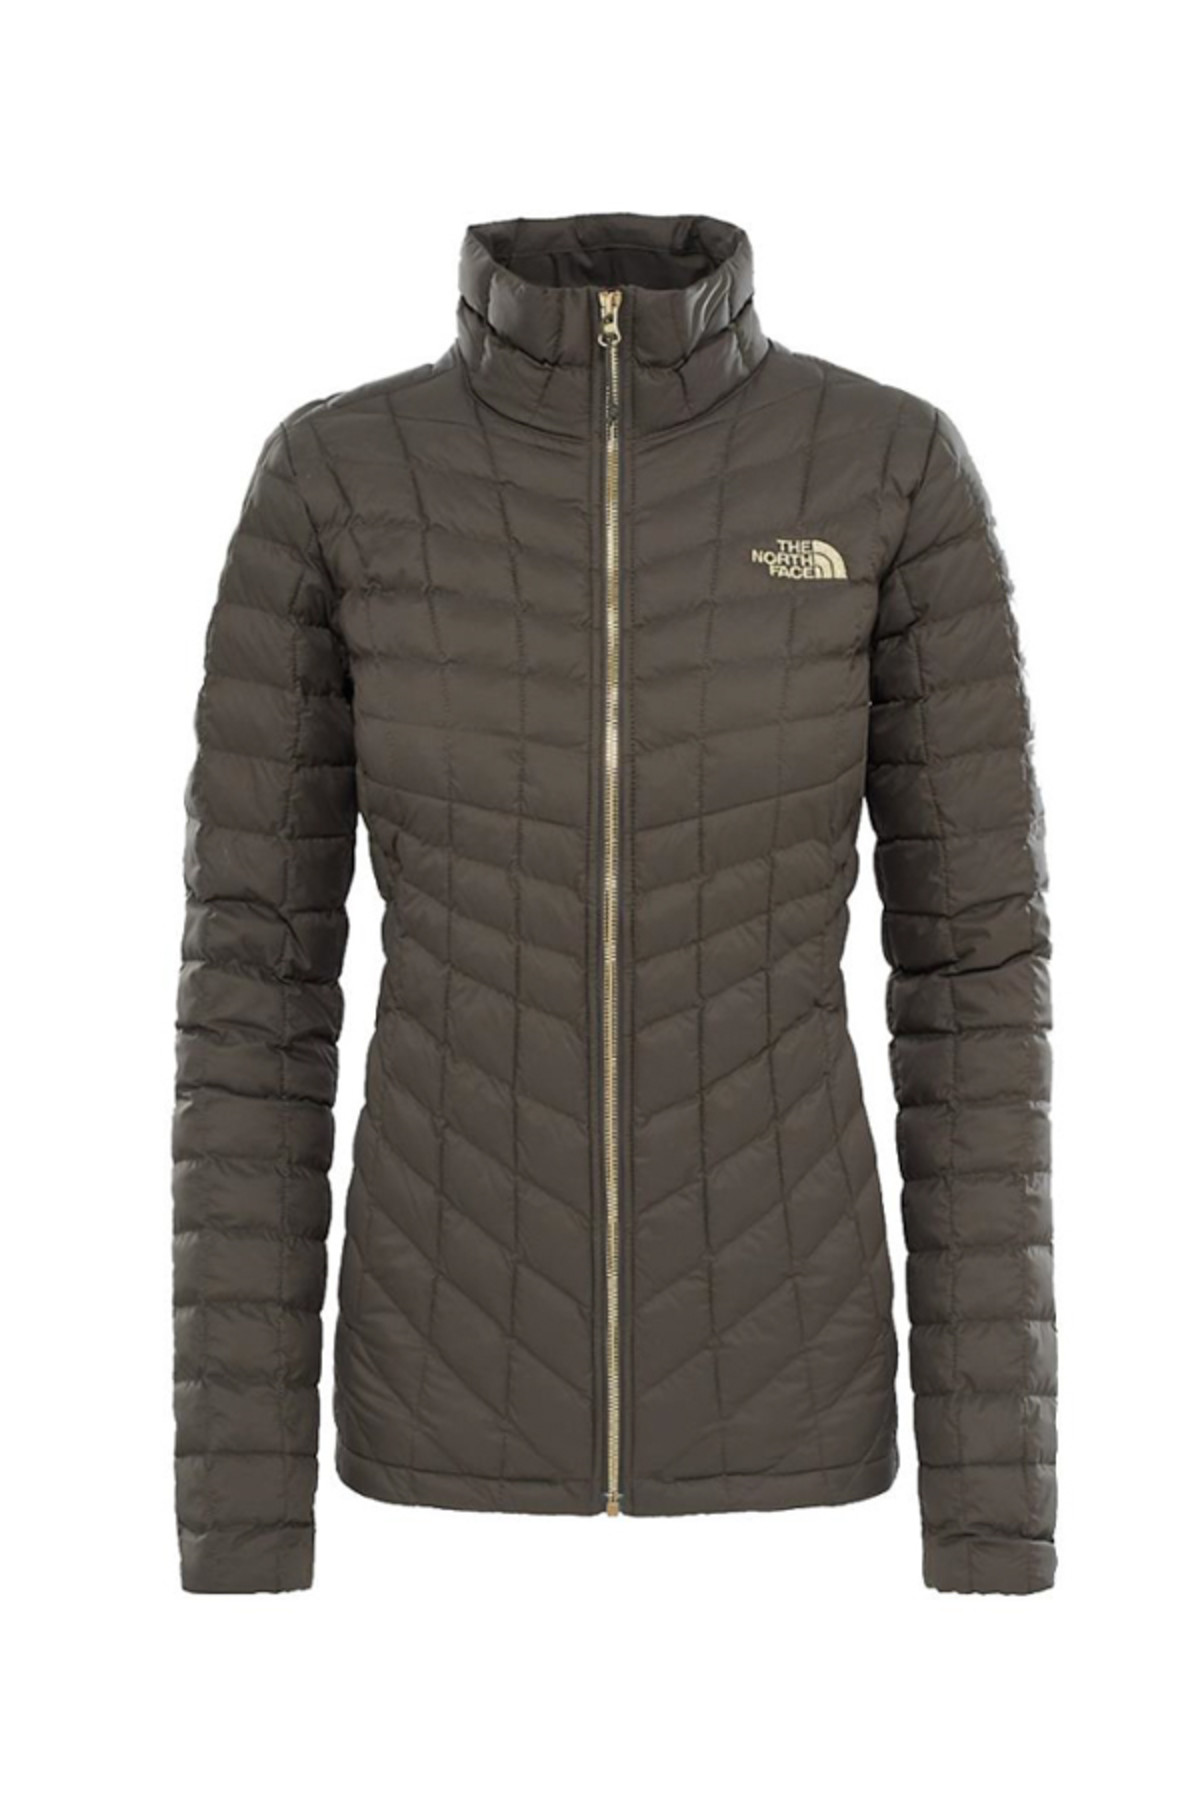 The North Face The North Face Thermoball Kadın Mont Haki – 1160.1 TL